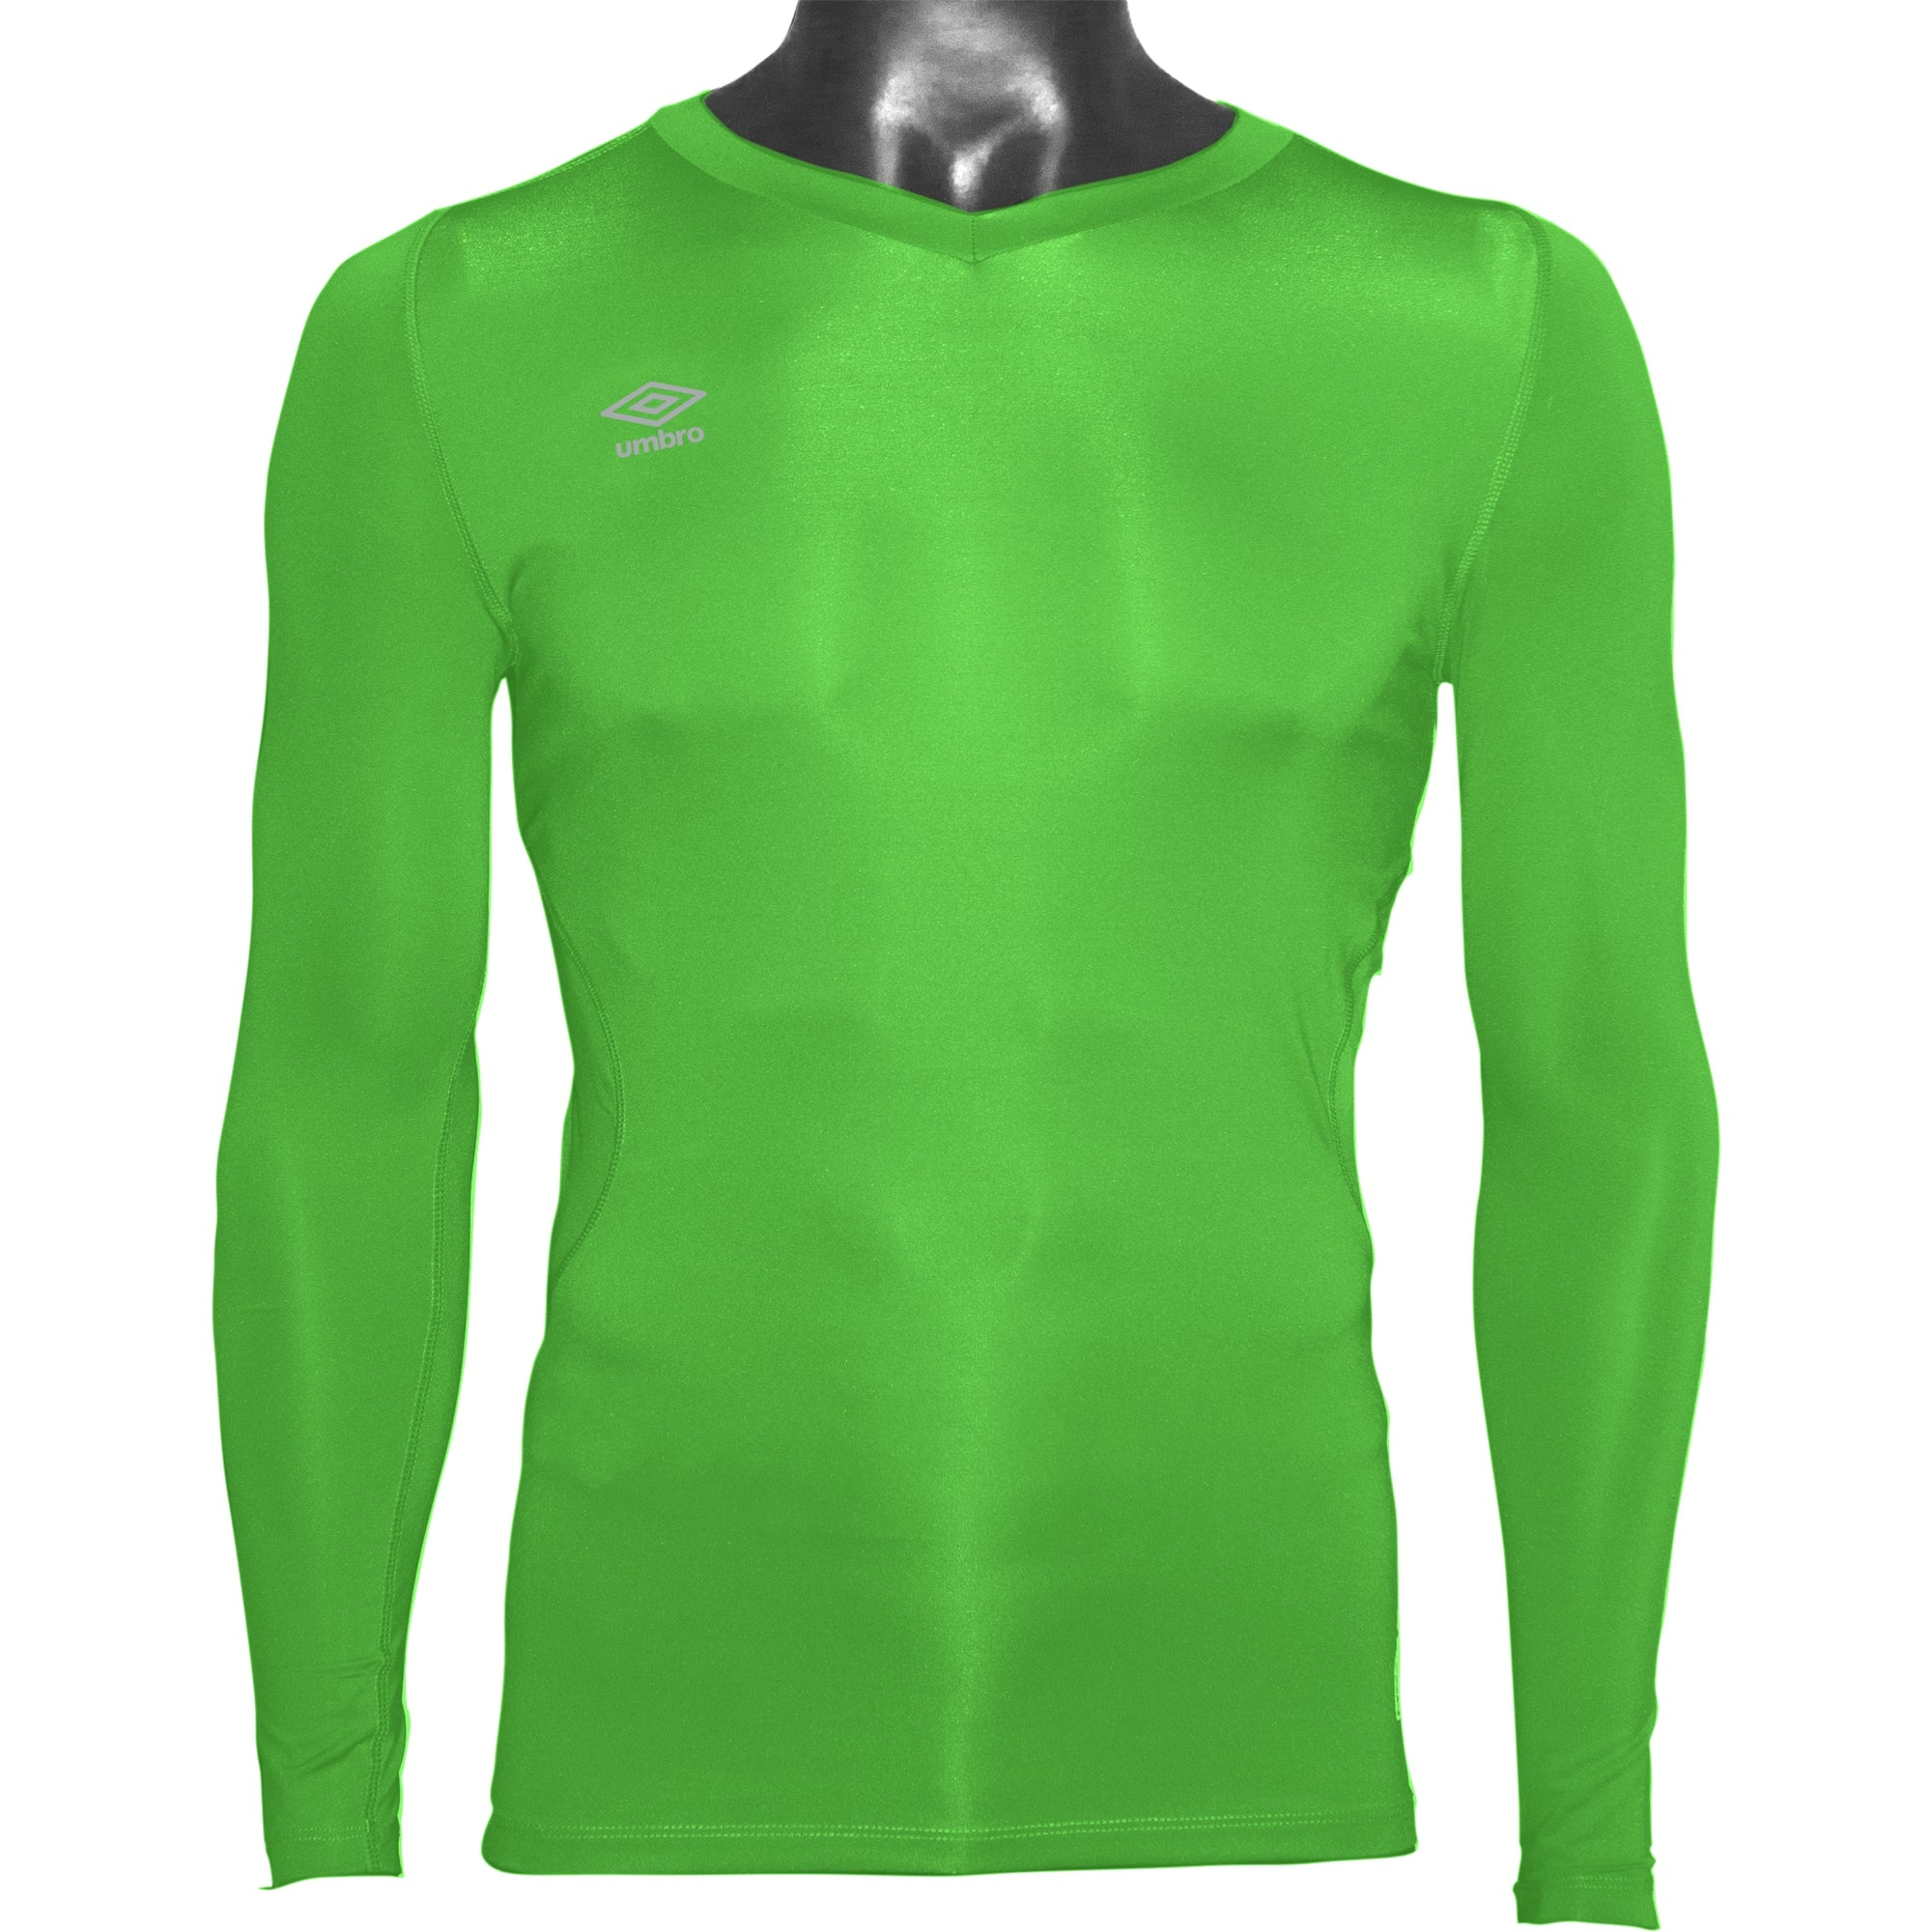 Umbro Elite V Neck baselayer in green gecko with reflective stacked diamond logo on right chest